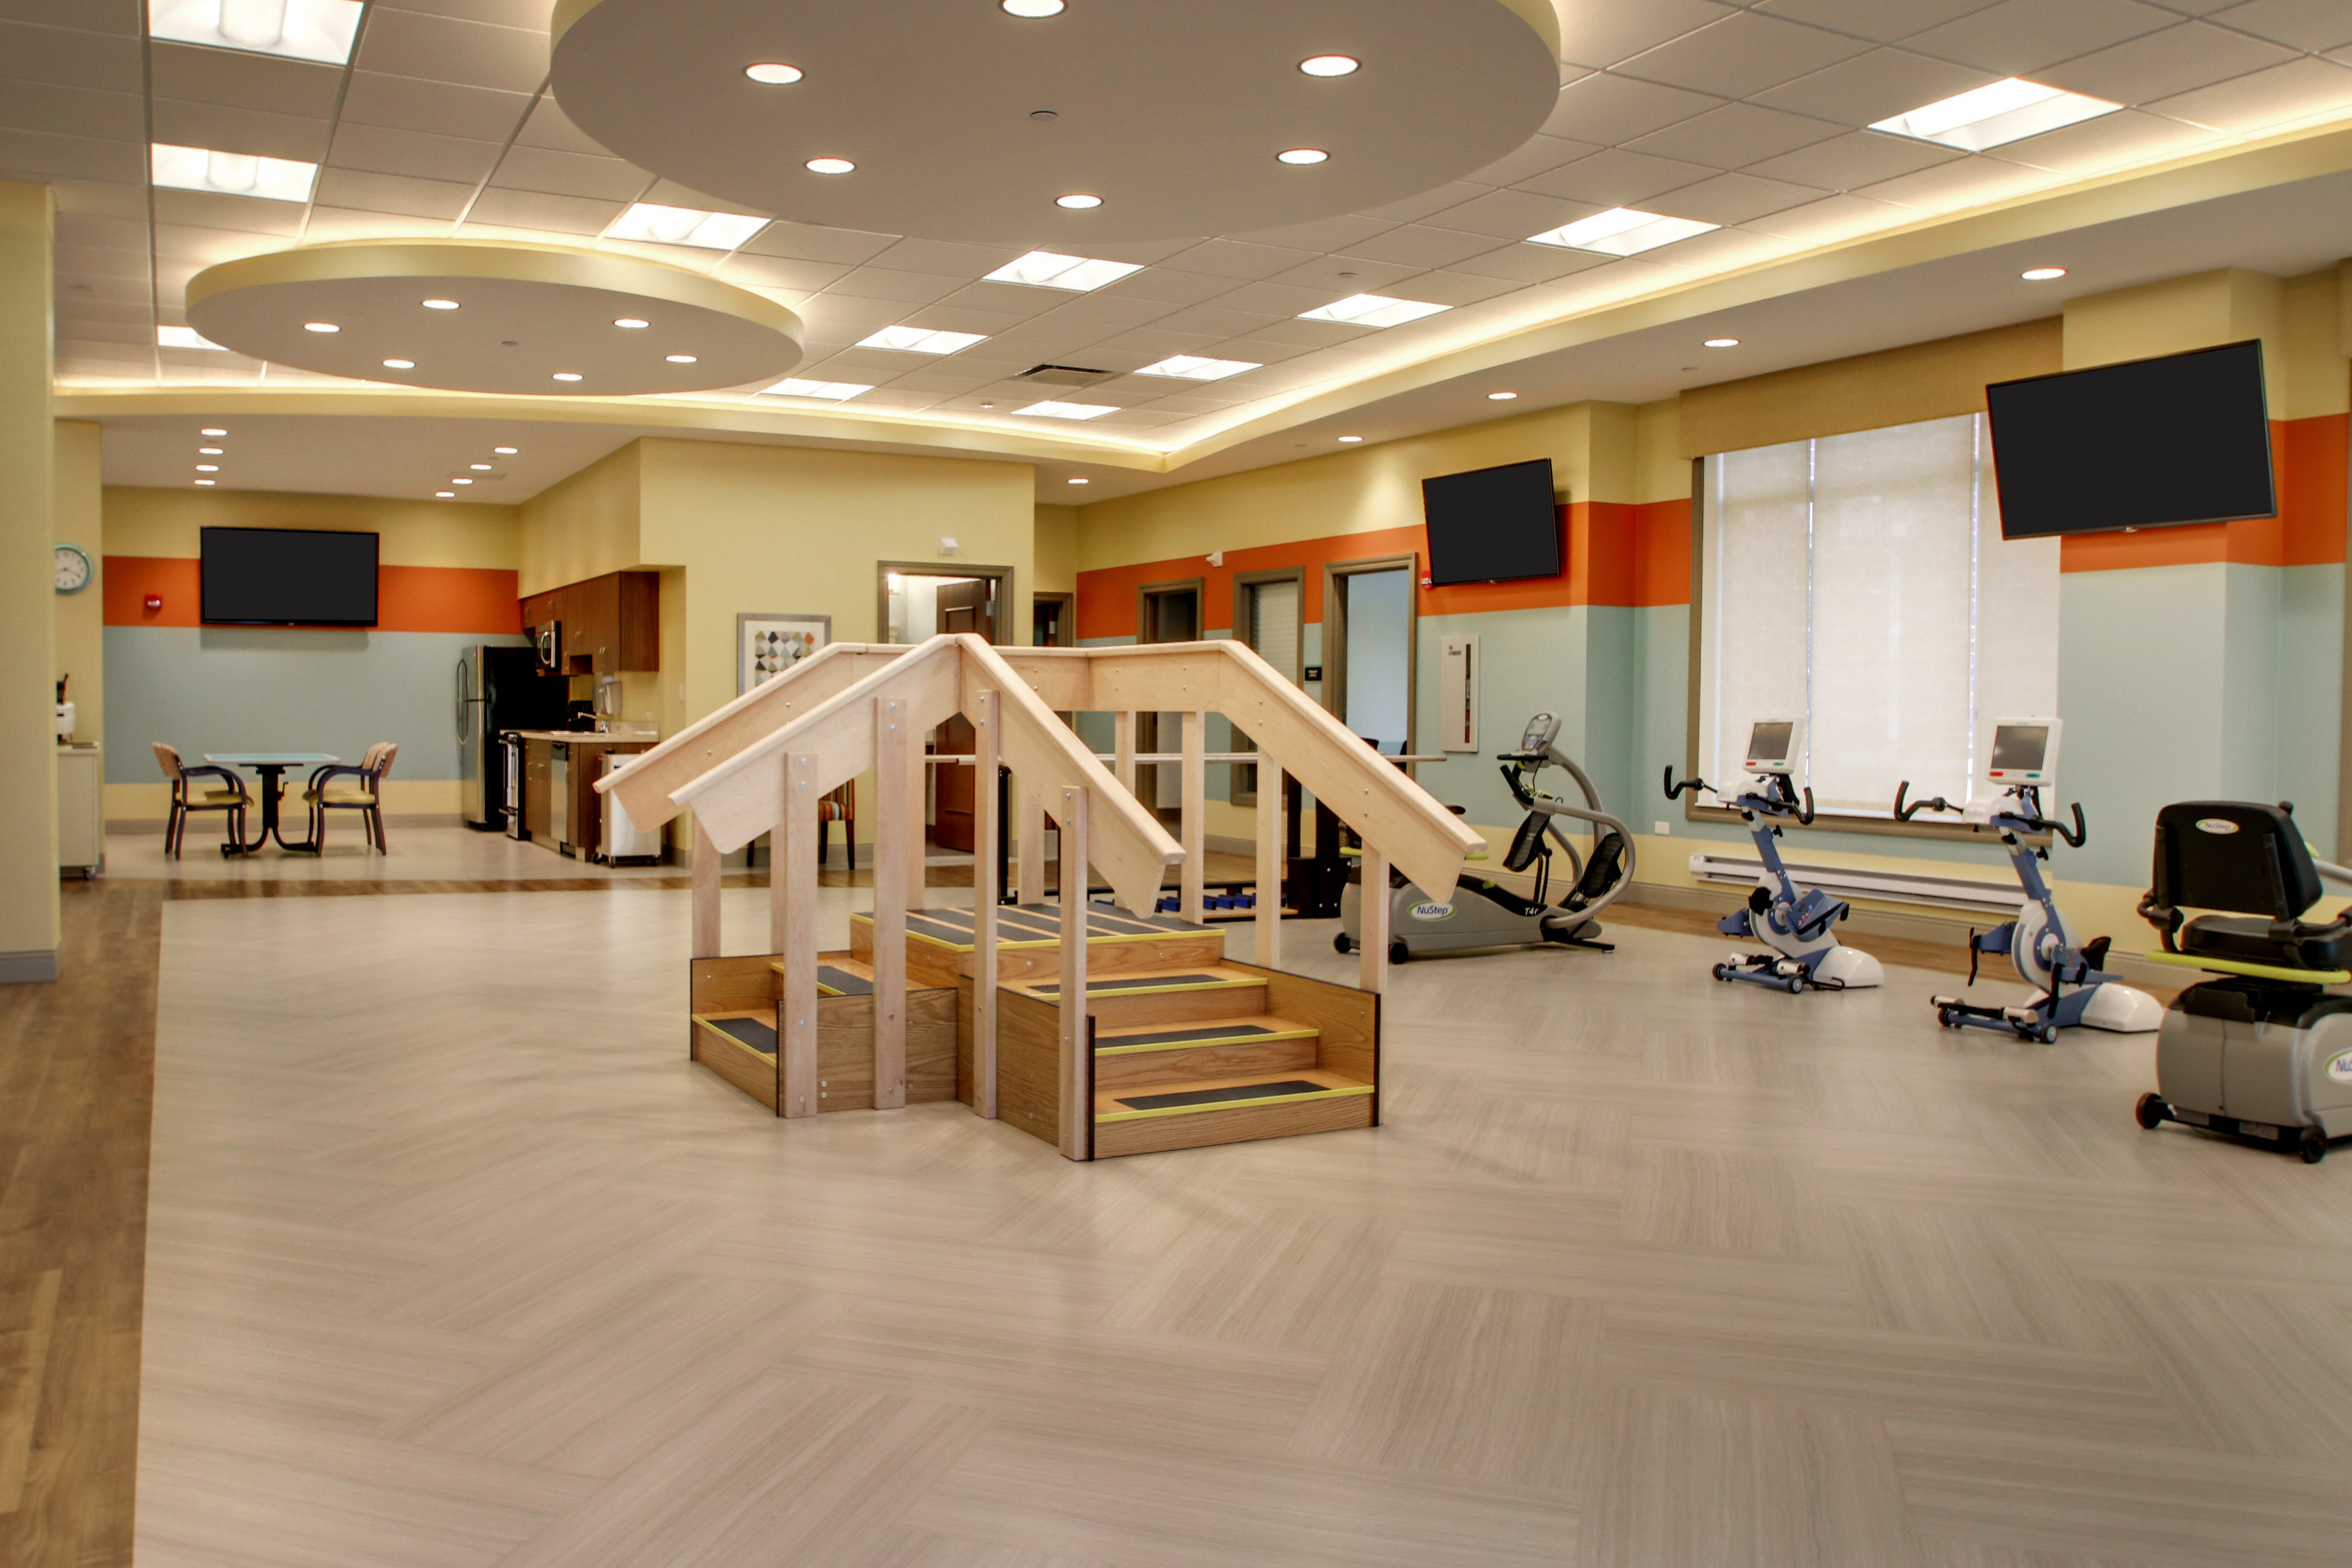 Palos hills strive center for rehabilitation bria for The family room psychotherapy associates